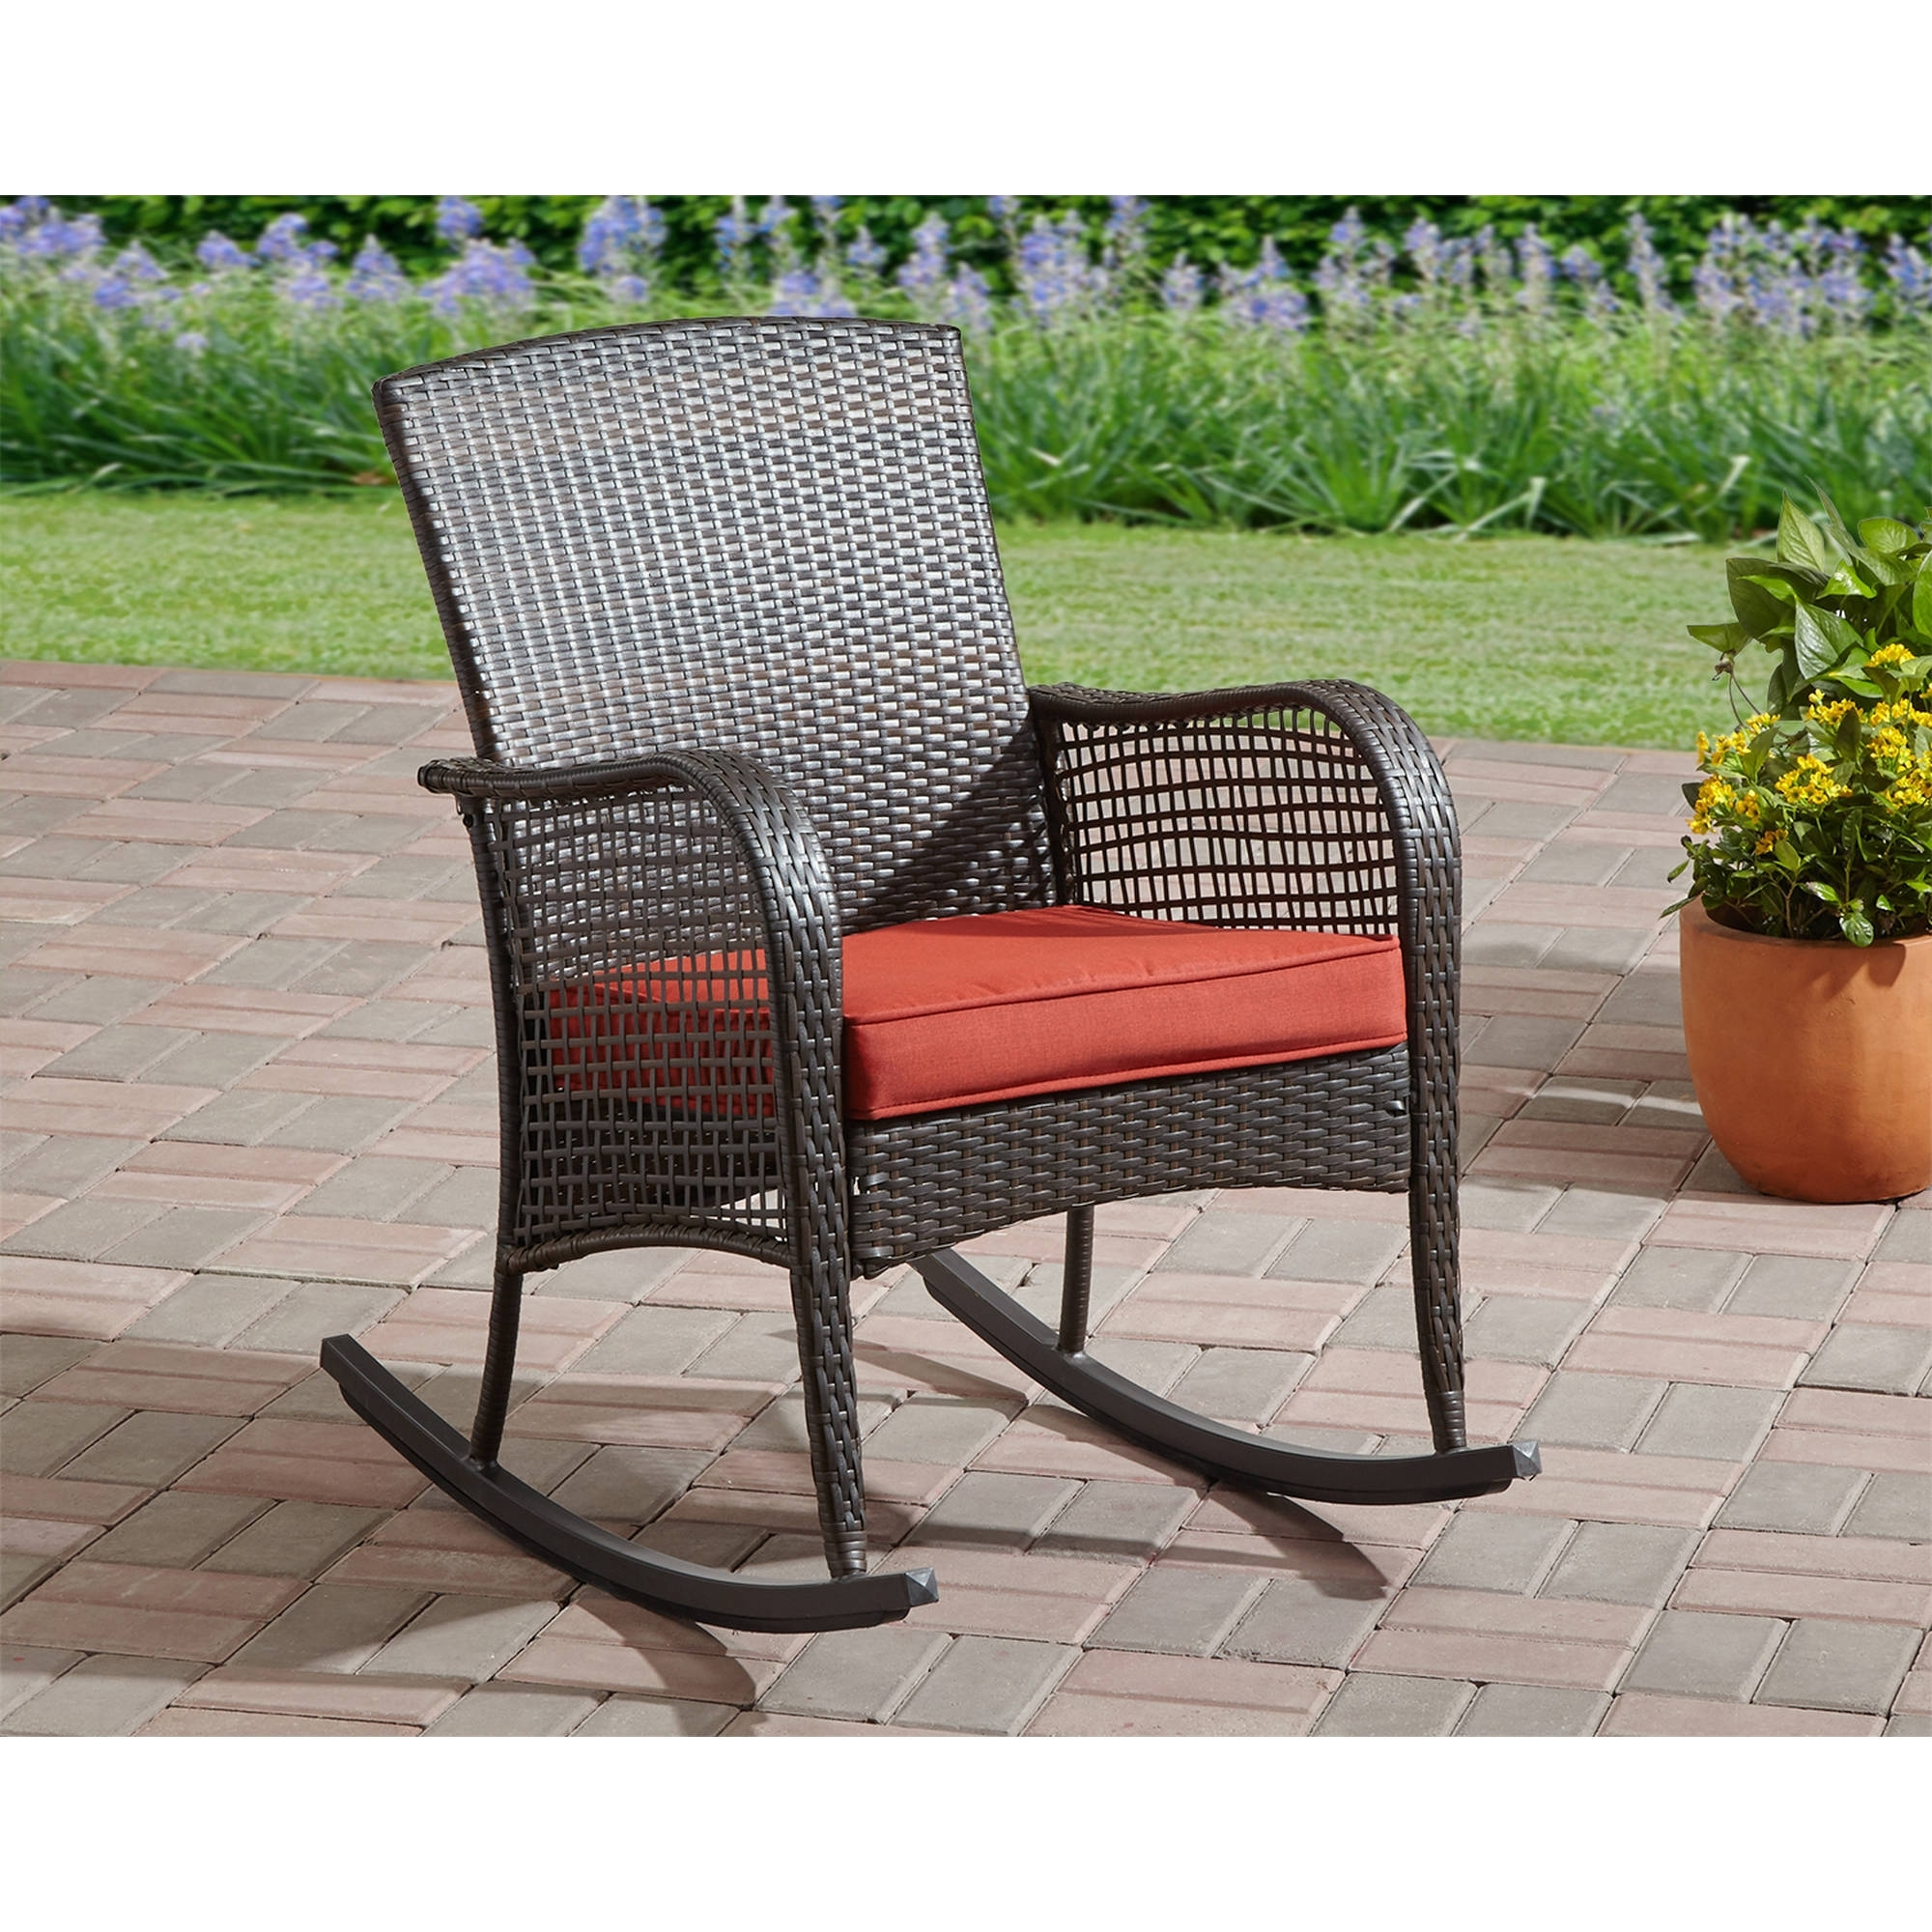 Rocking Chair Cushion Seat Wicker Steel Frame Outdoor Patio Deck With Outdoor Wicker Rocking Chairs (View 11 of 15)